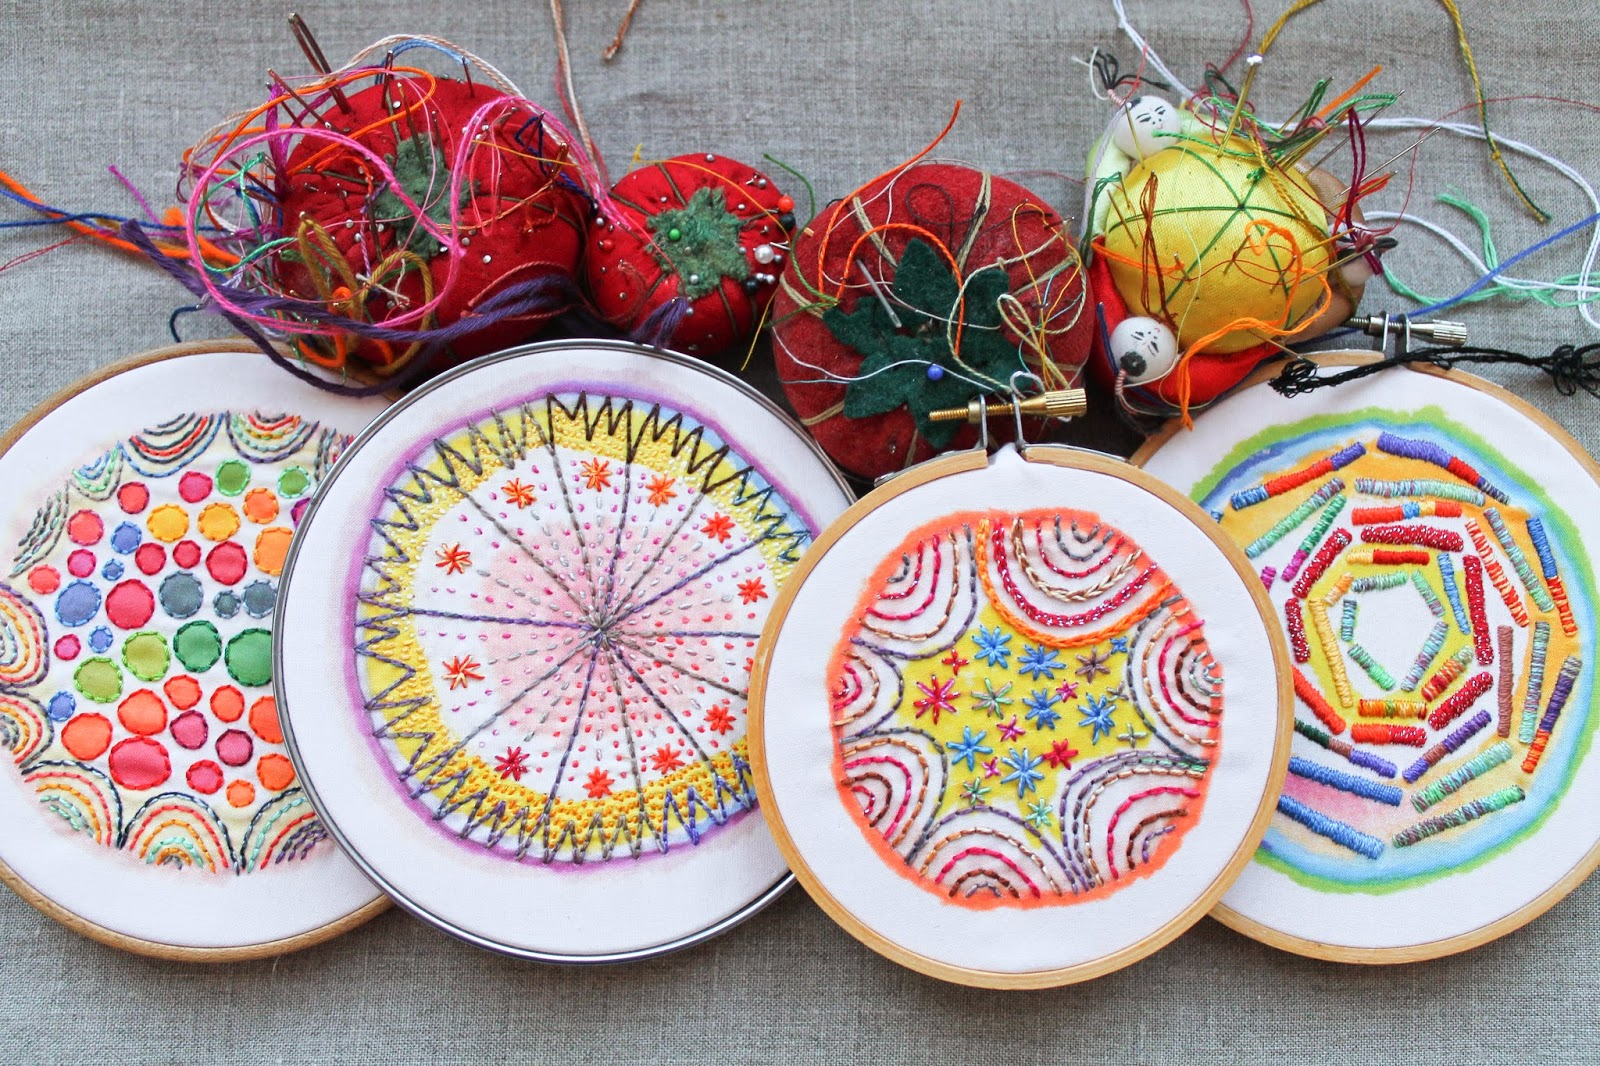 Drop cloth introducing color burst embroidery subscriptions